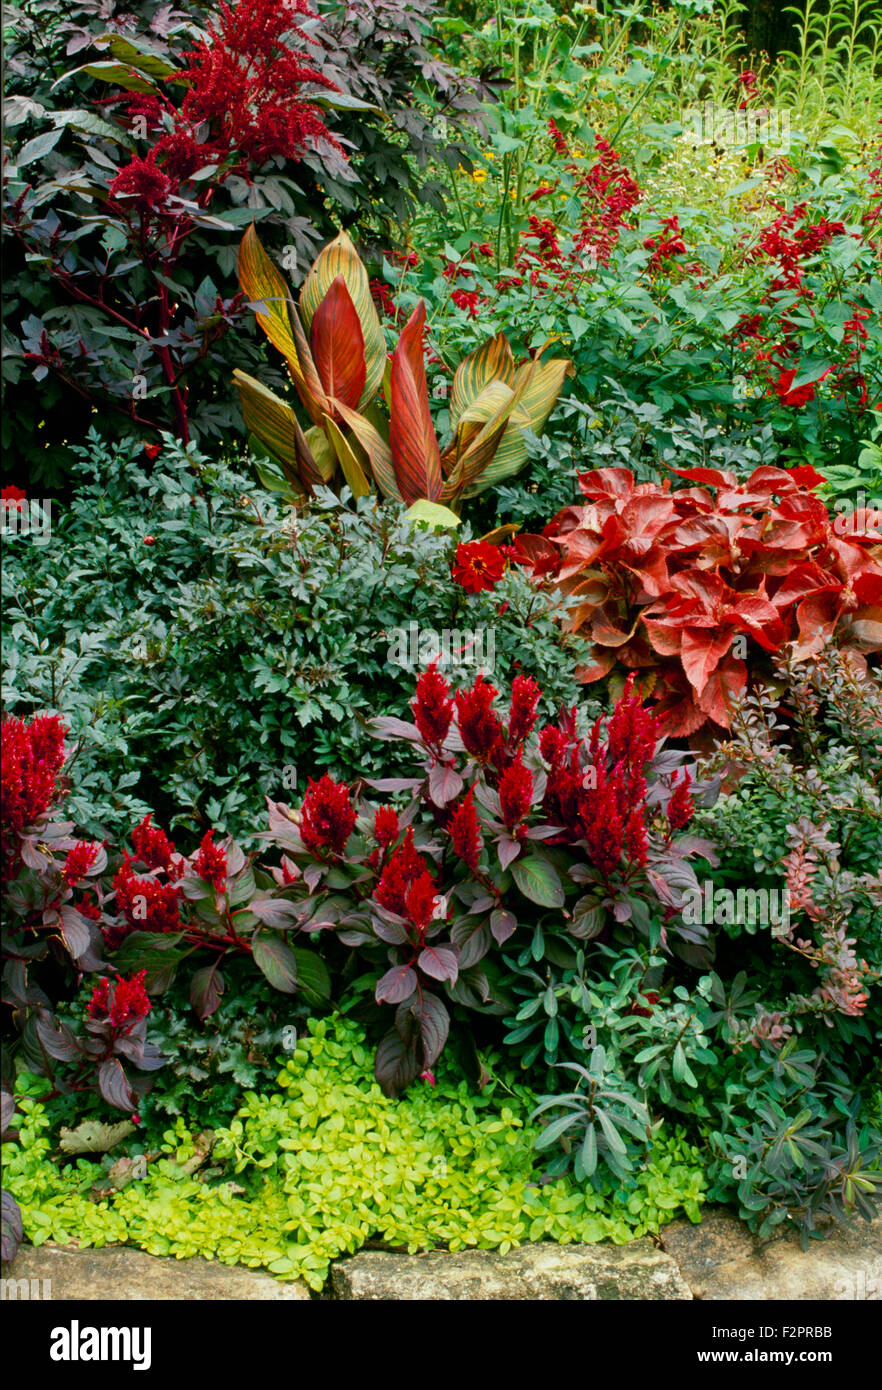 red flowers and foliage in landscape garden design with rock border columbia missouri usa